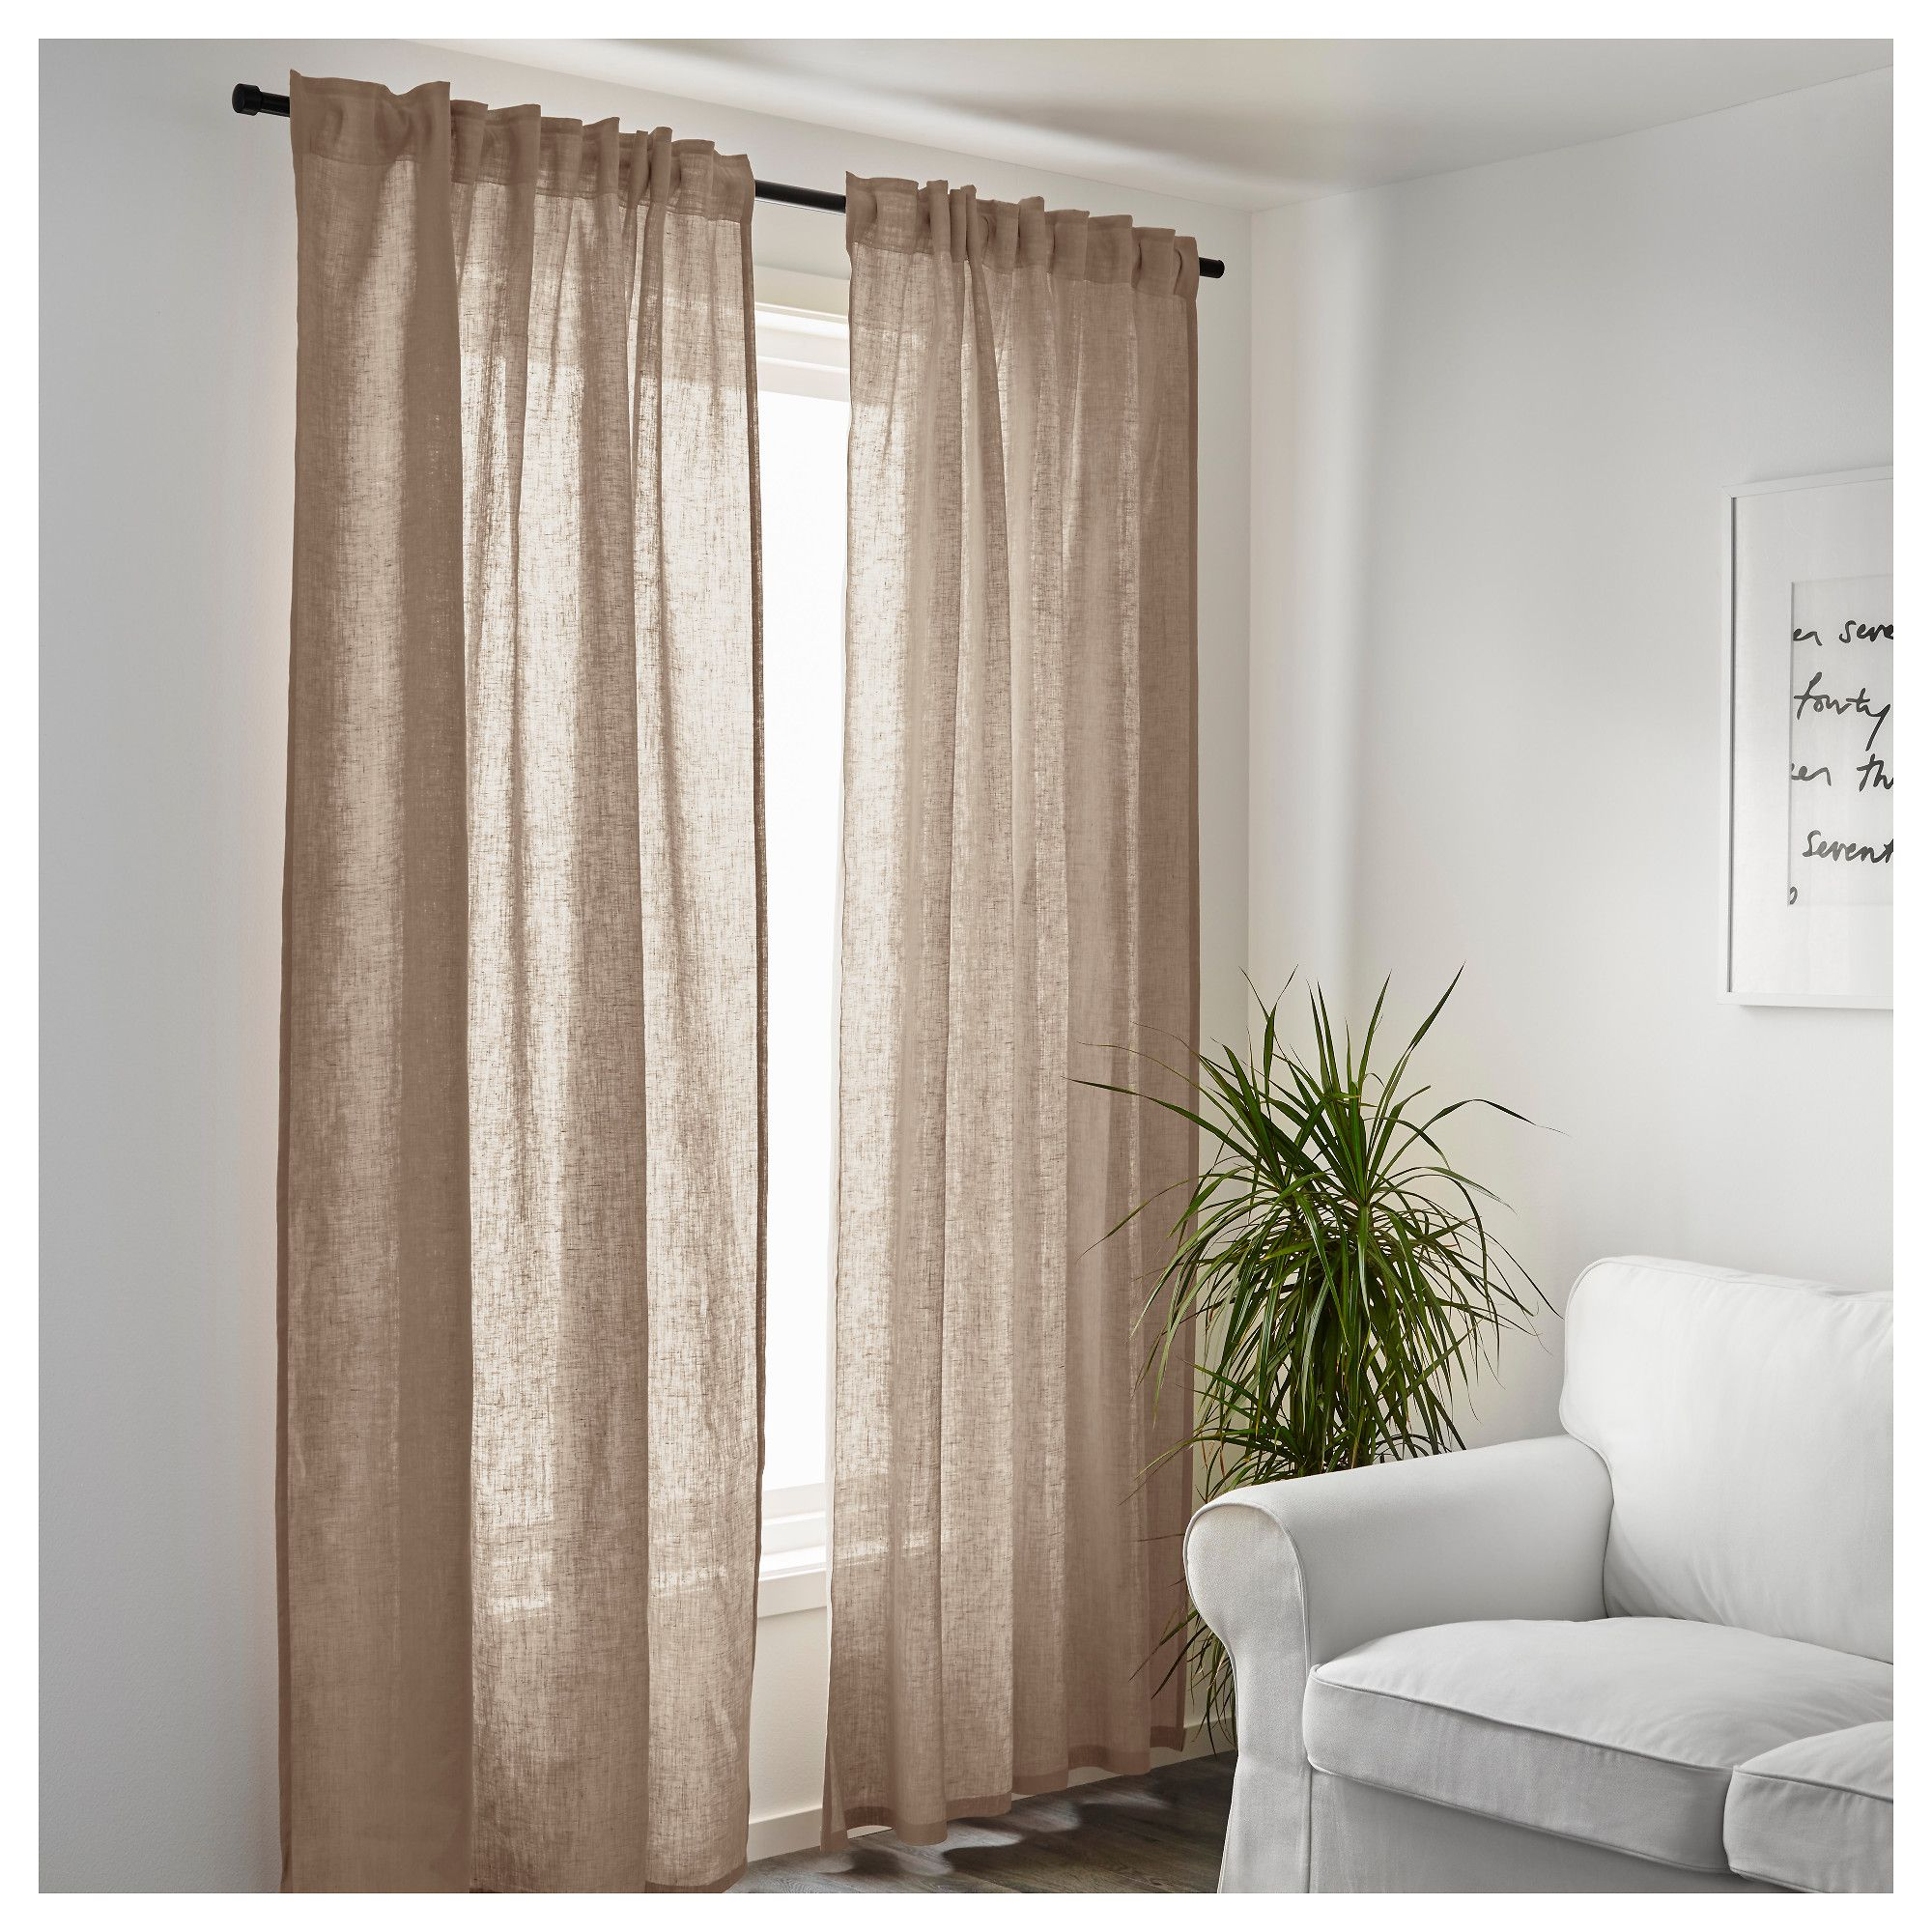 Ikea Aina Curtains 1 Pair Beige Products In 2019